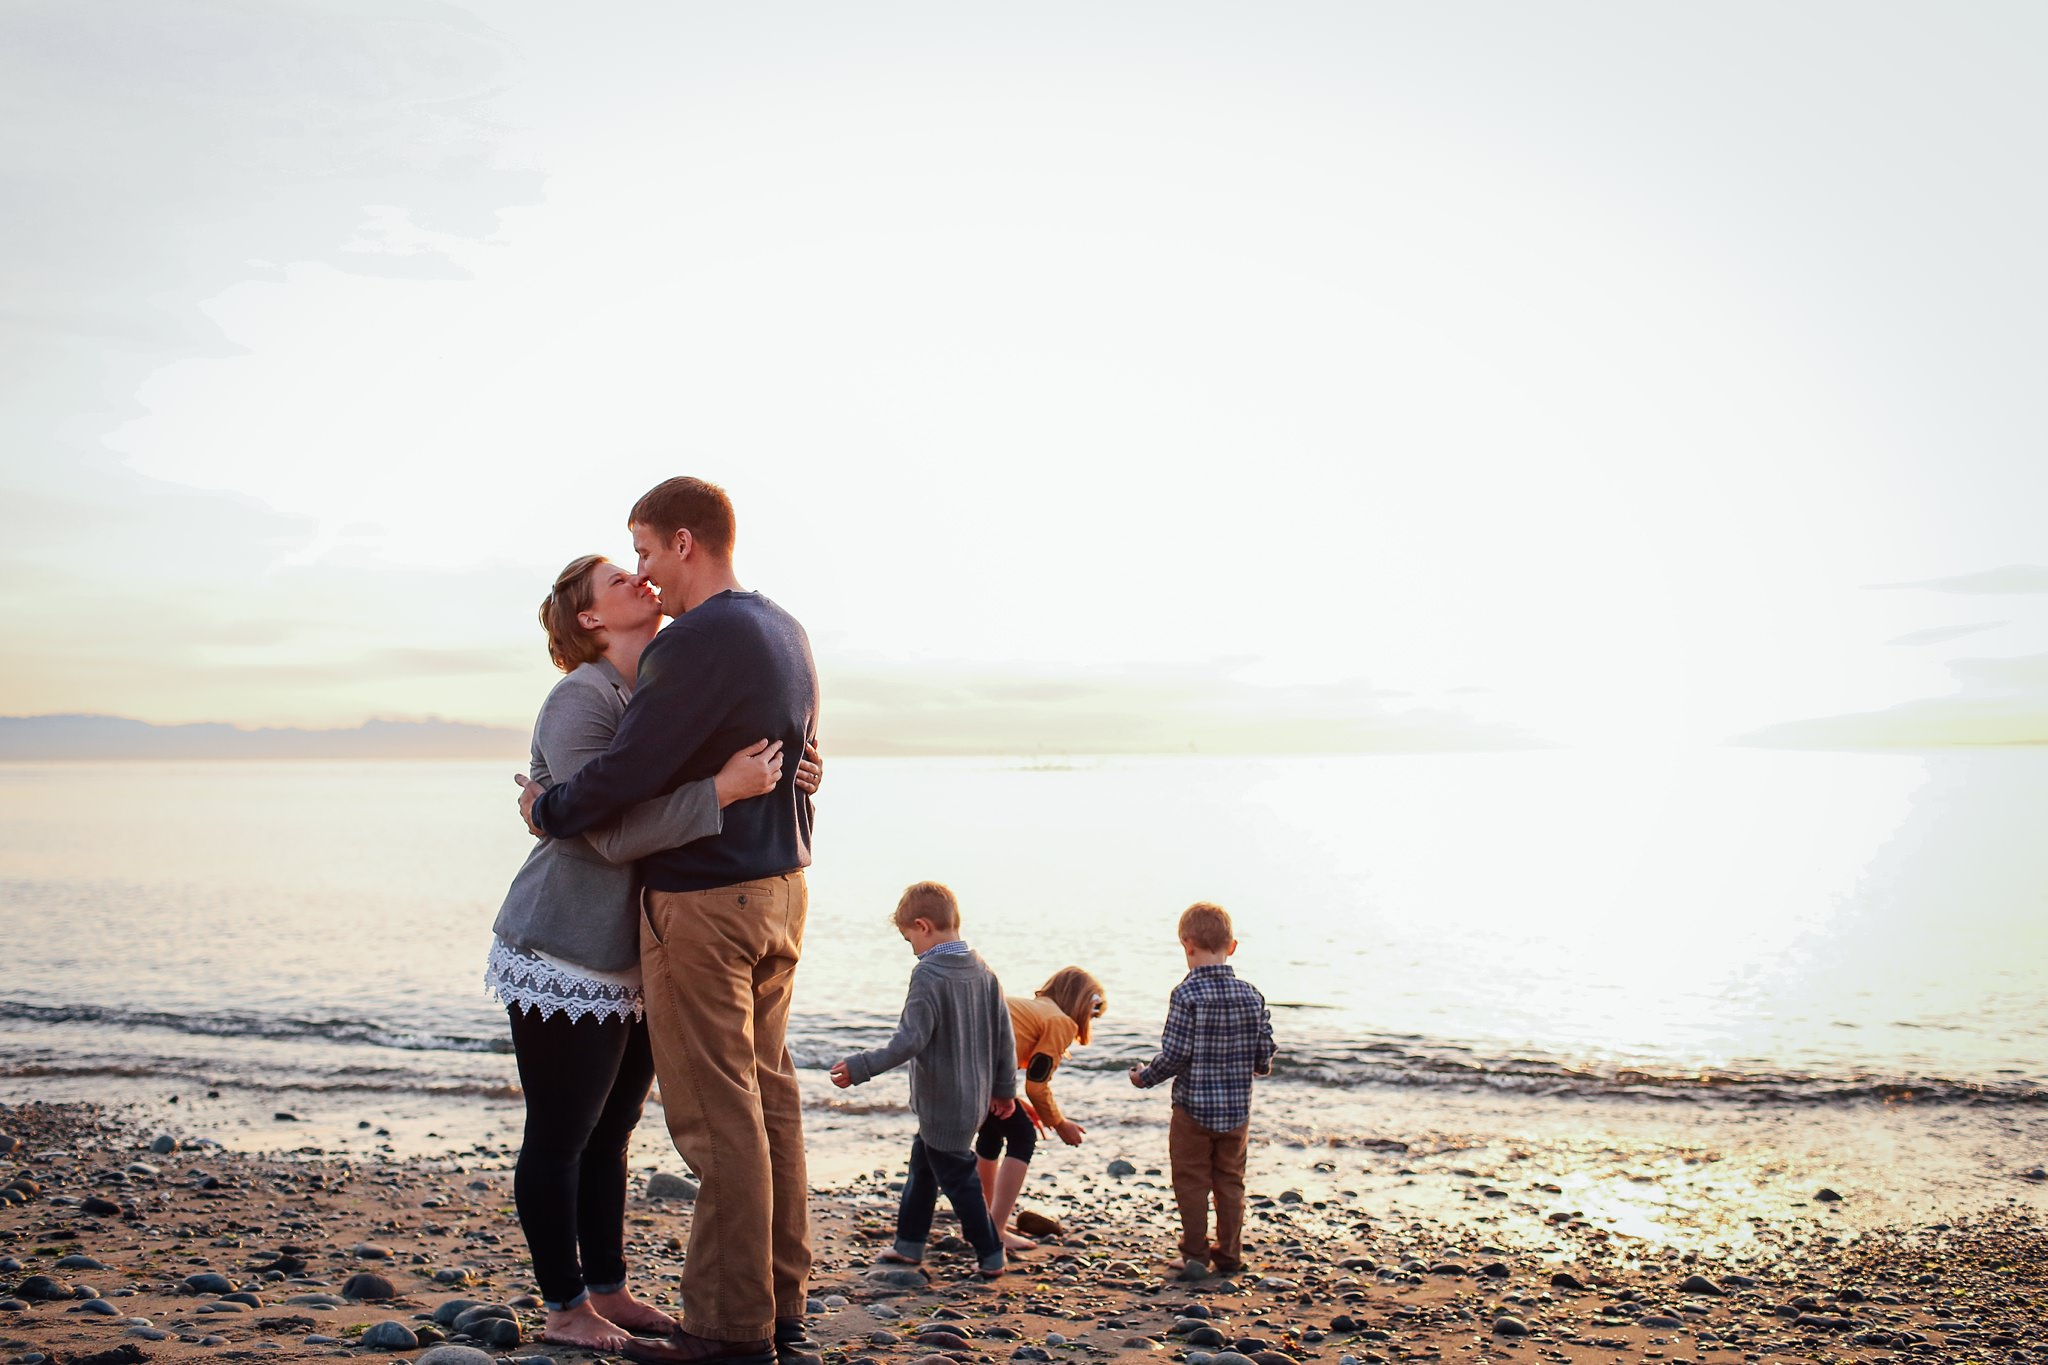 Whidbey-Island-Family-Photographer-Kara-Chappell-Photography_1211.jpg